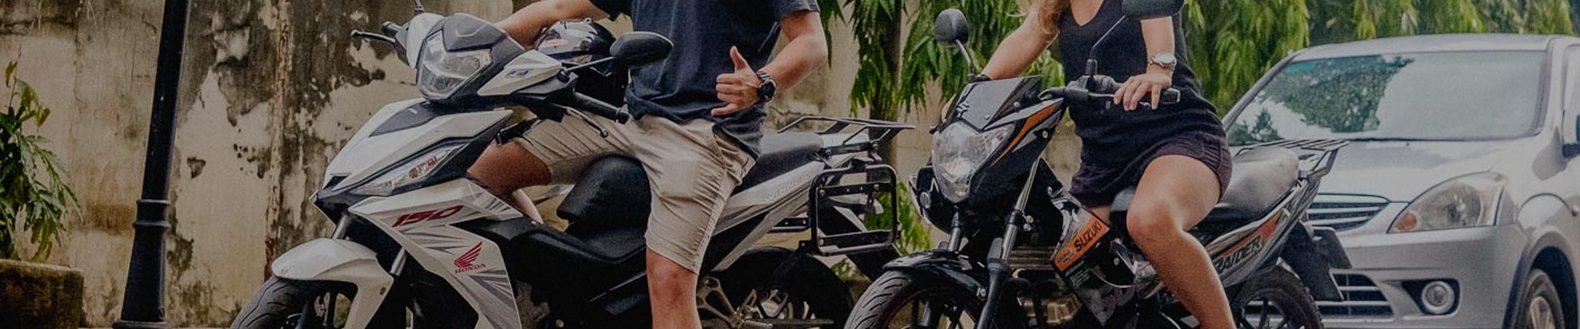 Rental motorbikes for travelling Vietnam